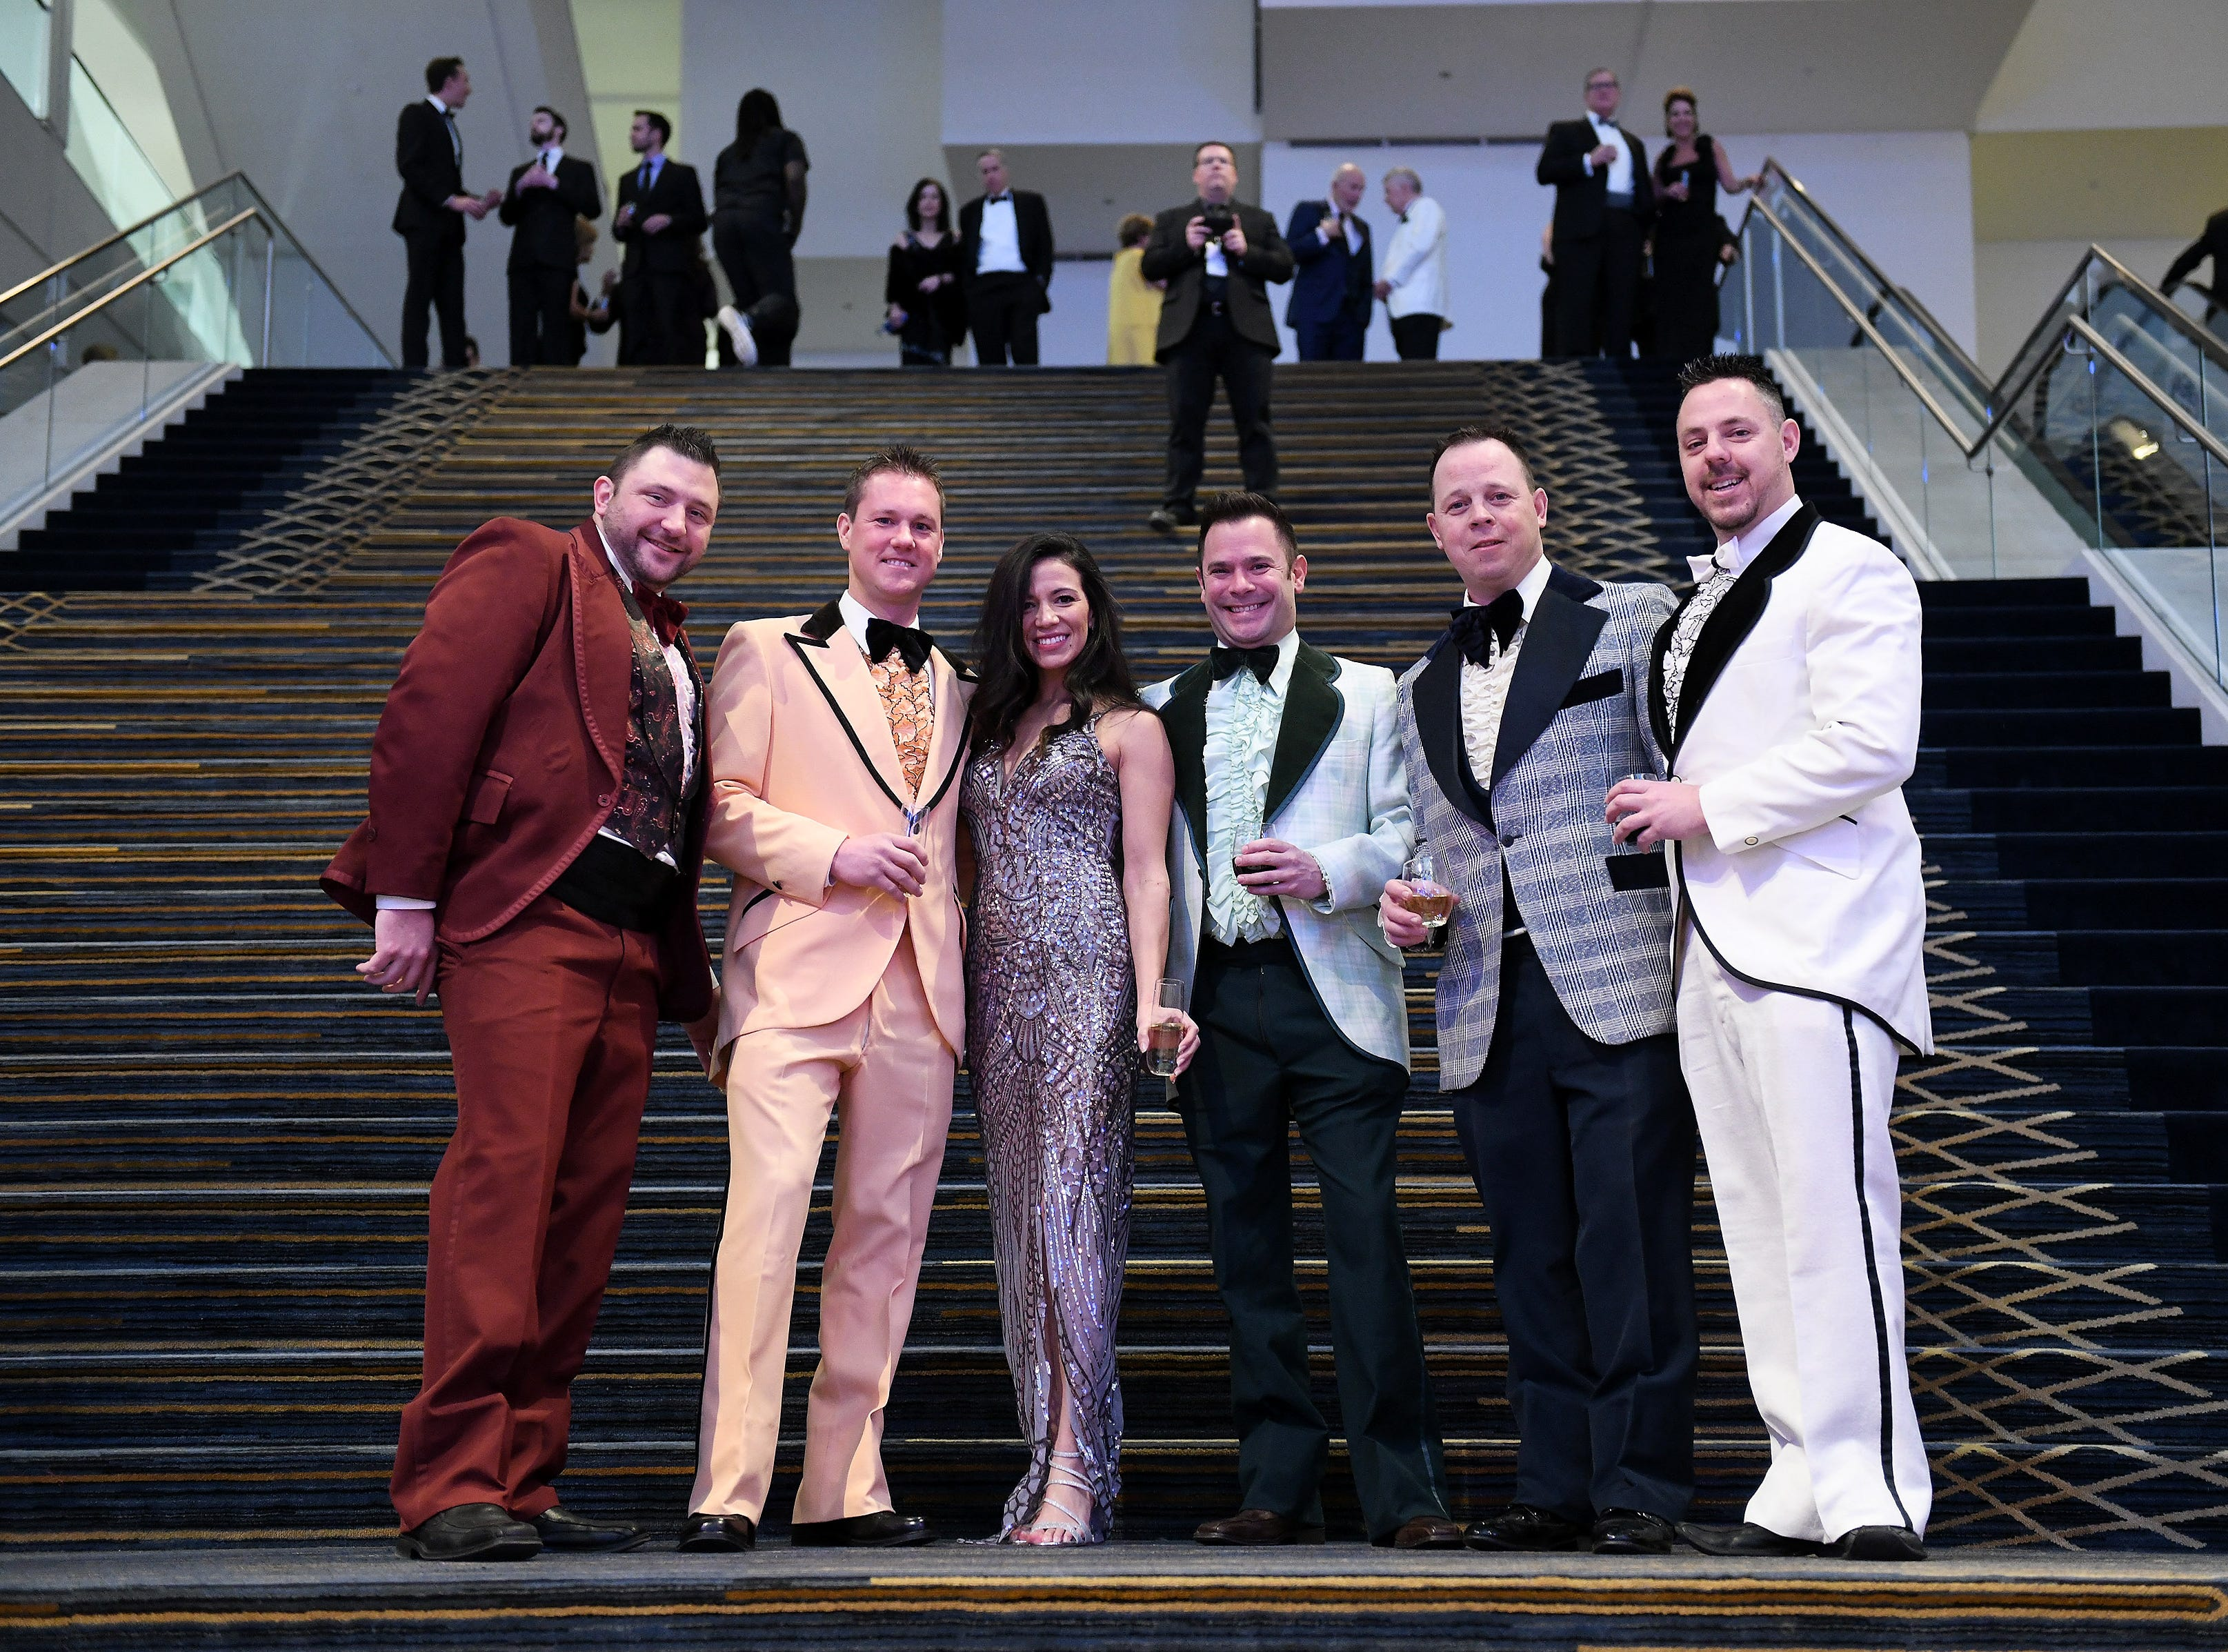 From left, Stephen Mahoney of Clinton Township, Mike and Laine Siemen of Macomb, Joe Cianciolo of Clinton Township, Gene Gunnery of Kimball Township and Brent Pretzer of Clinton Township (Gene Gunnery owns Now and Then Formal Wear) pose for a group photo at the Charity Preview.